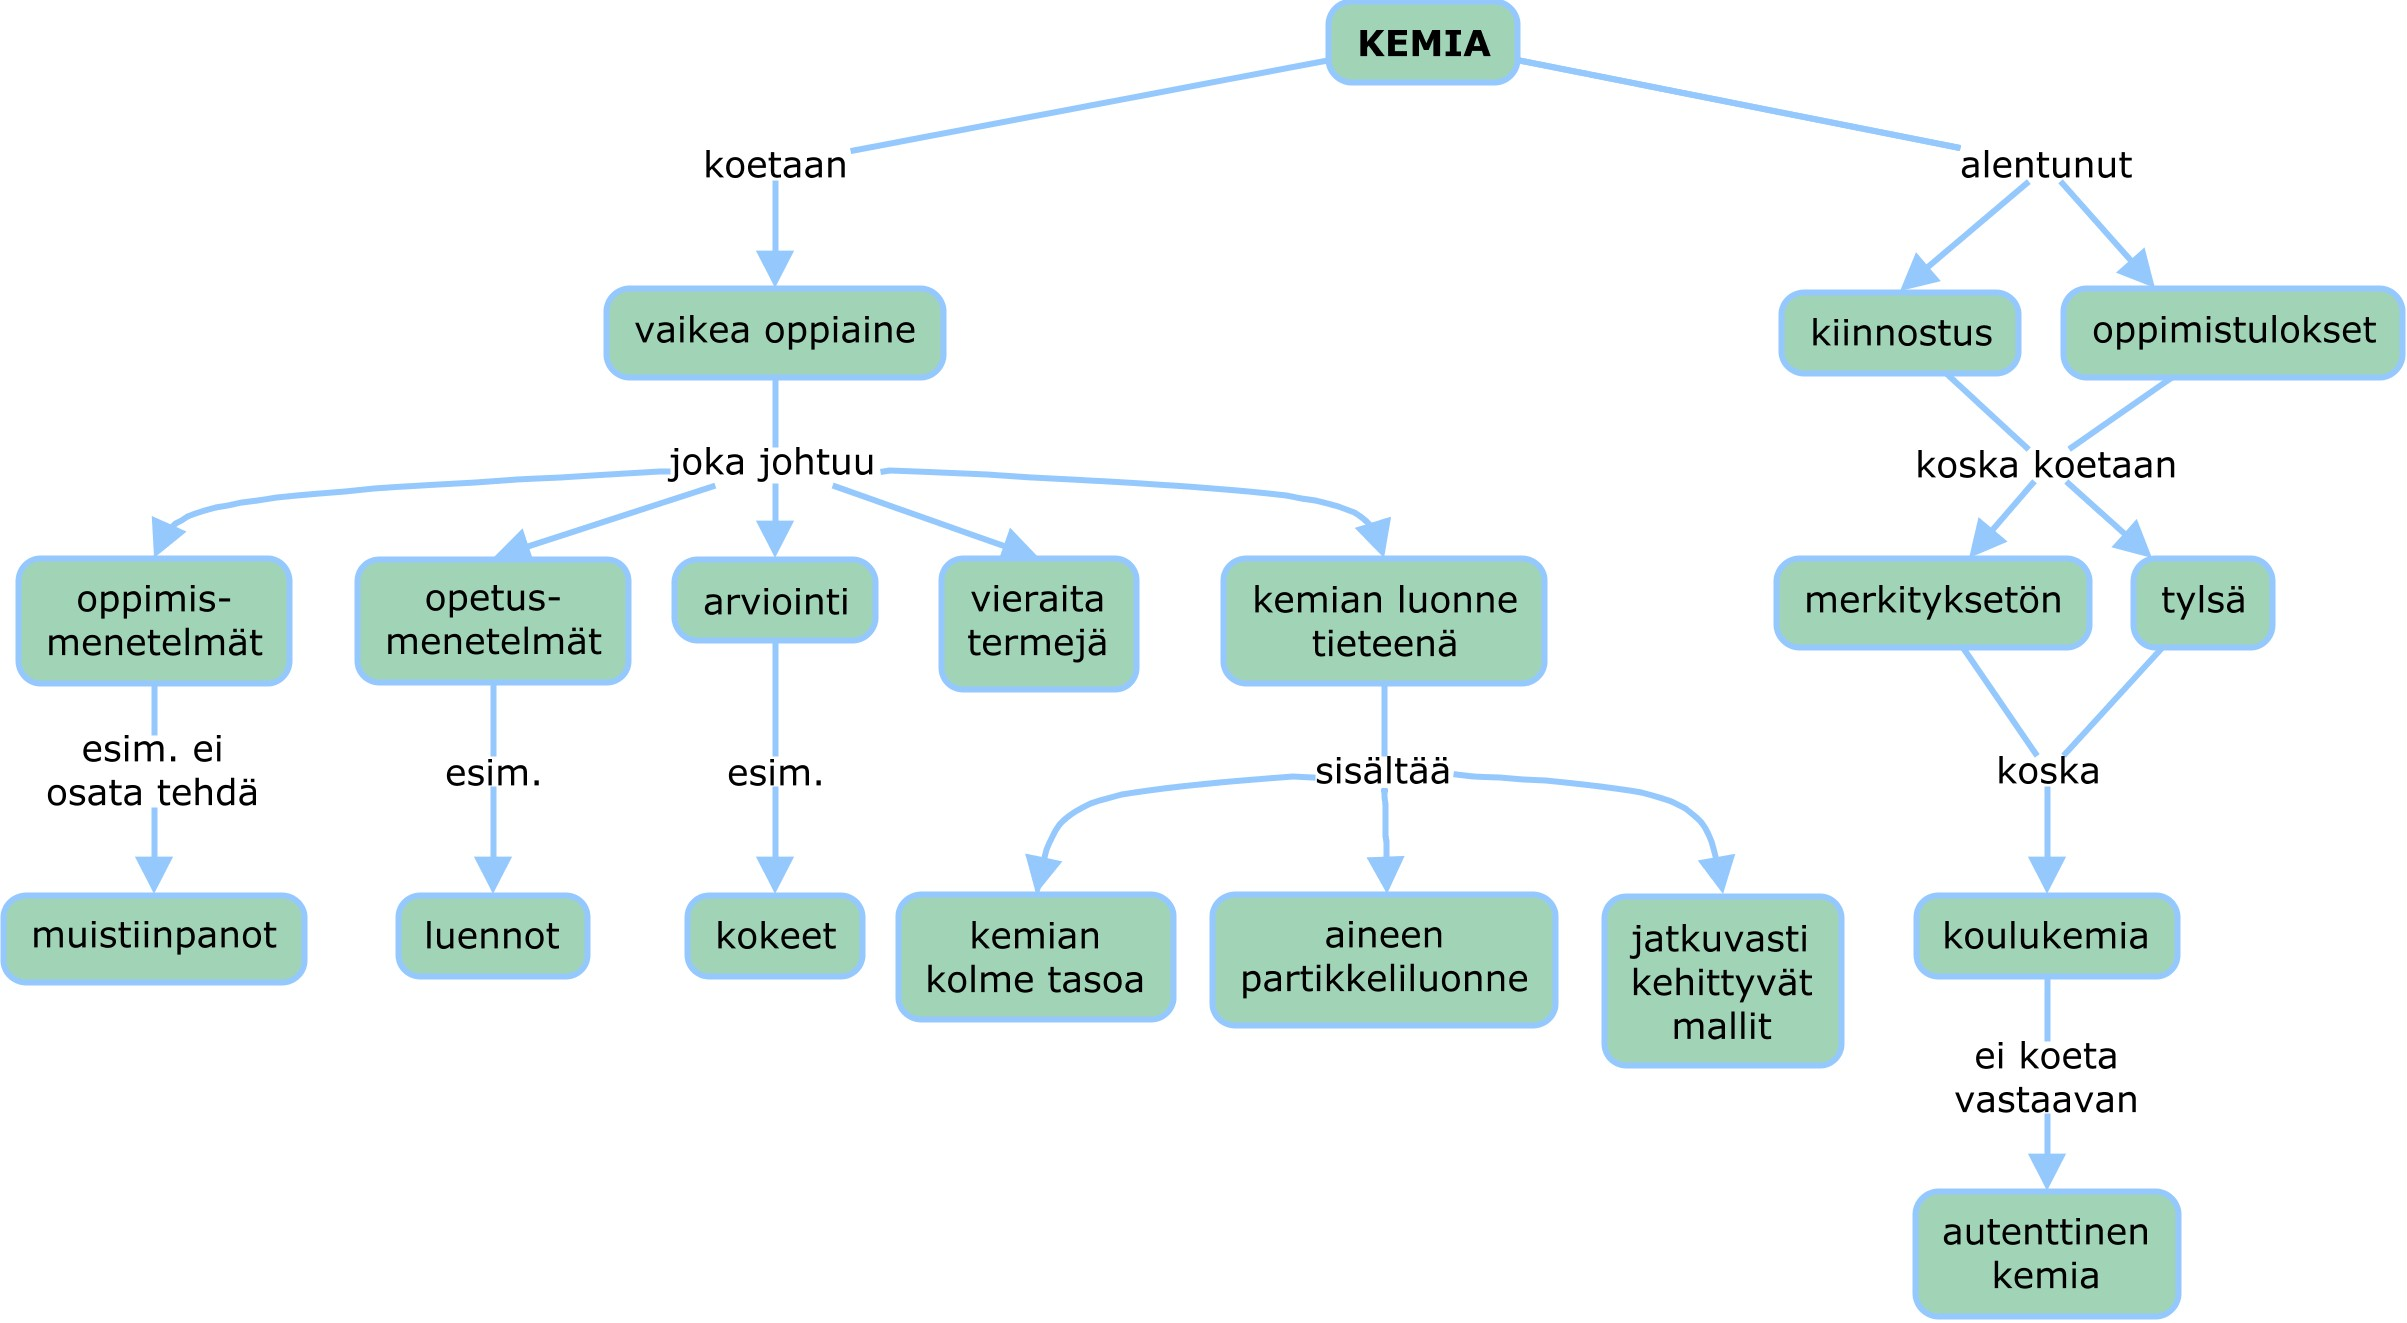 Käsitekartta artikkelin pääkohdista / Concep map about the key ideas of the article